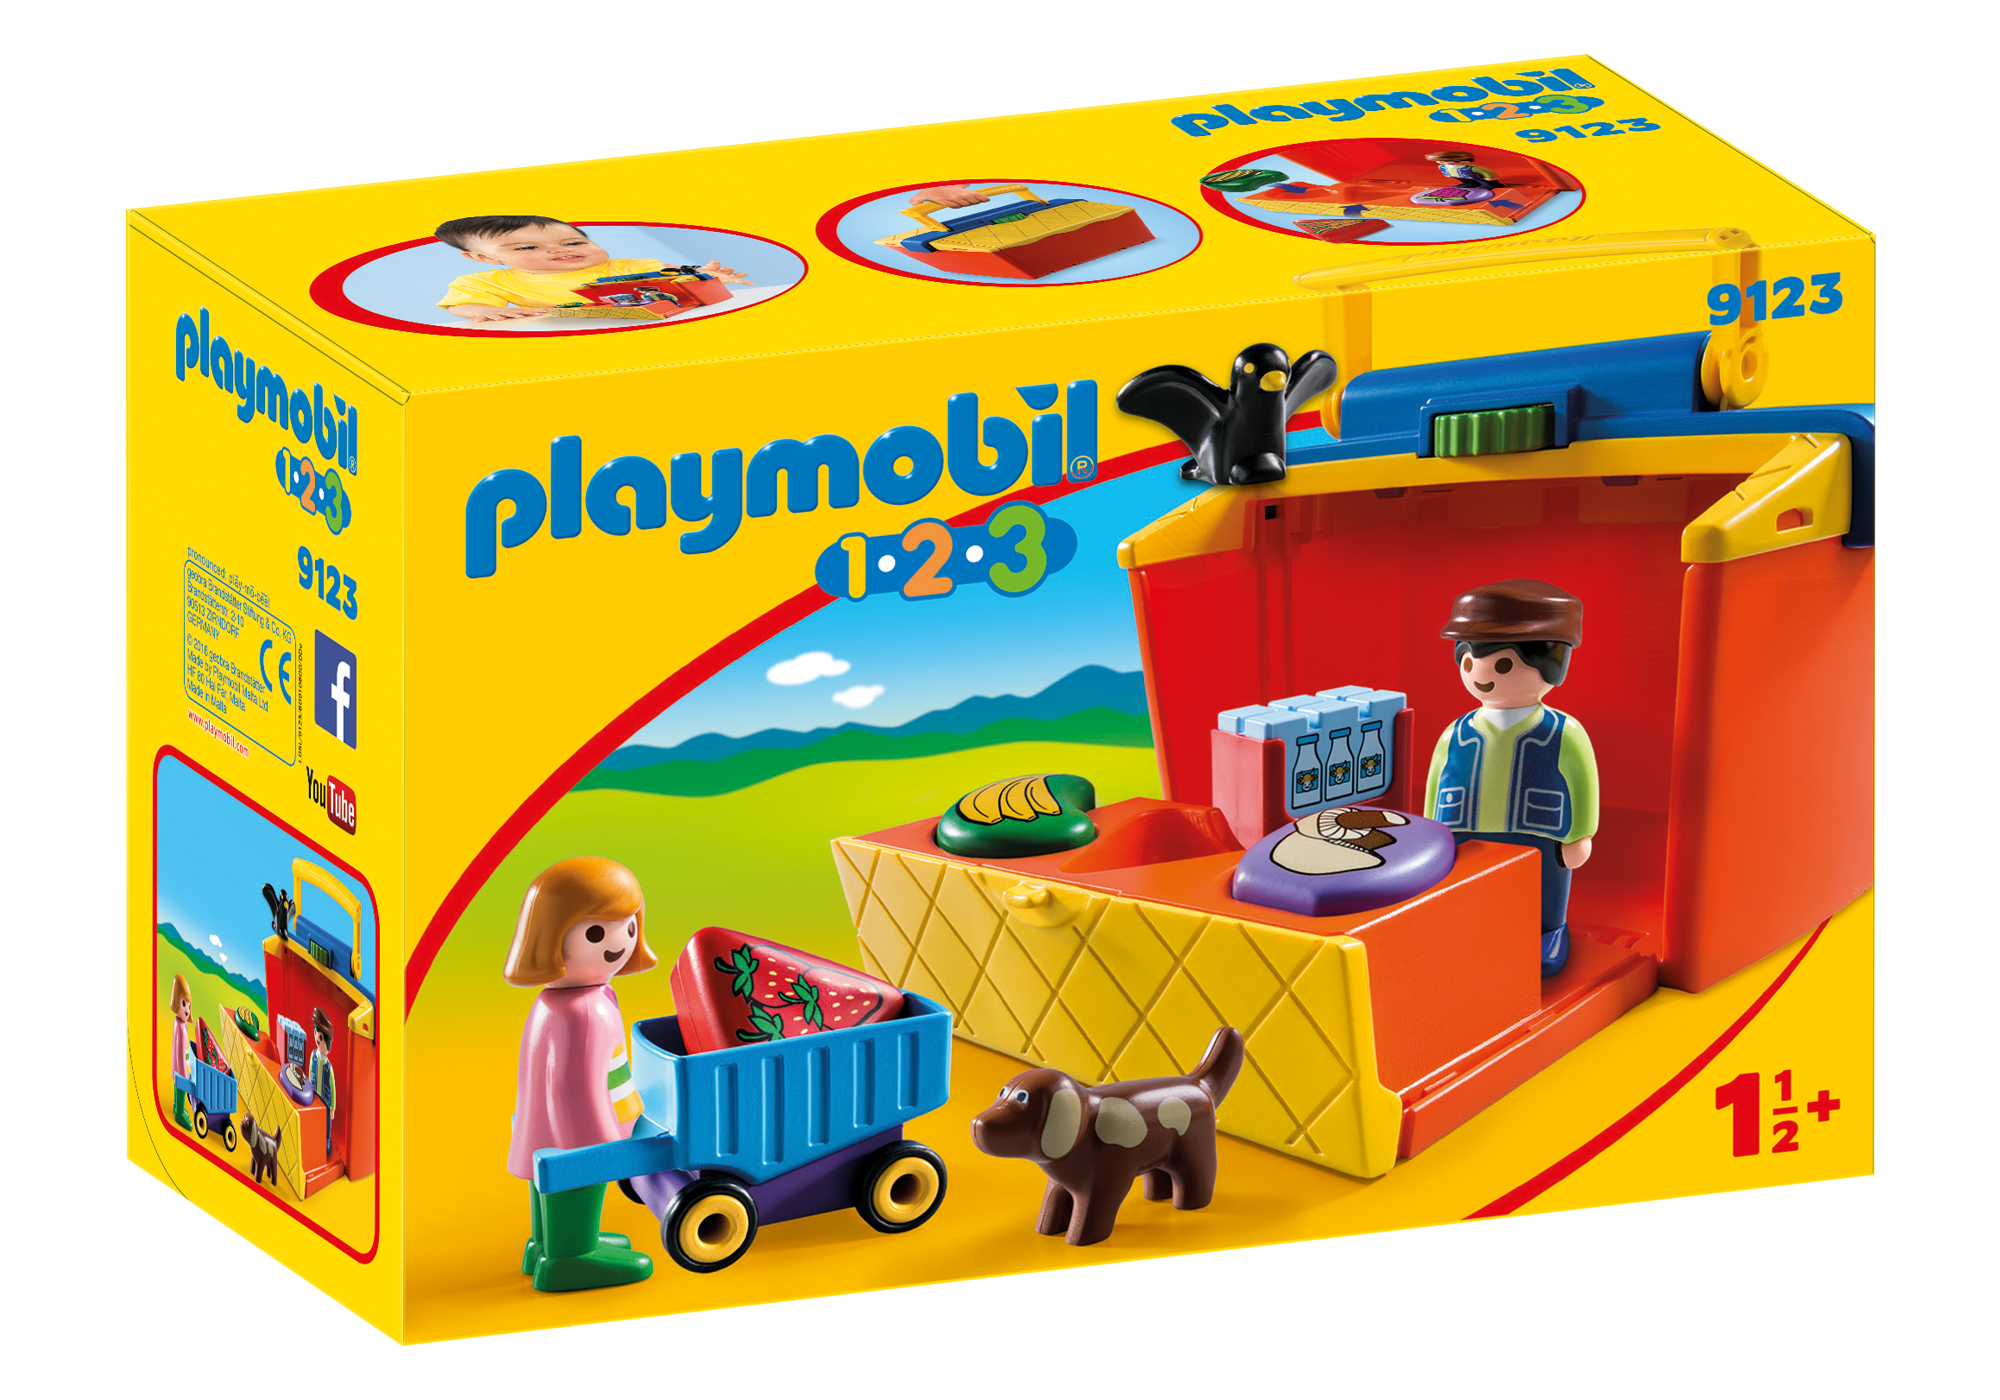 http://media.playmobil.com/i/playmobil/9123_product_box_front/1.2.3 Mercado Maletín